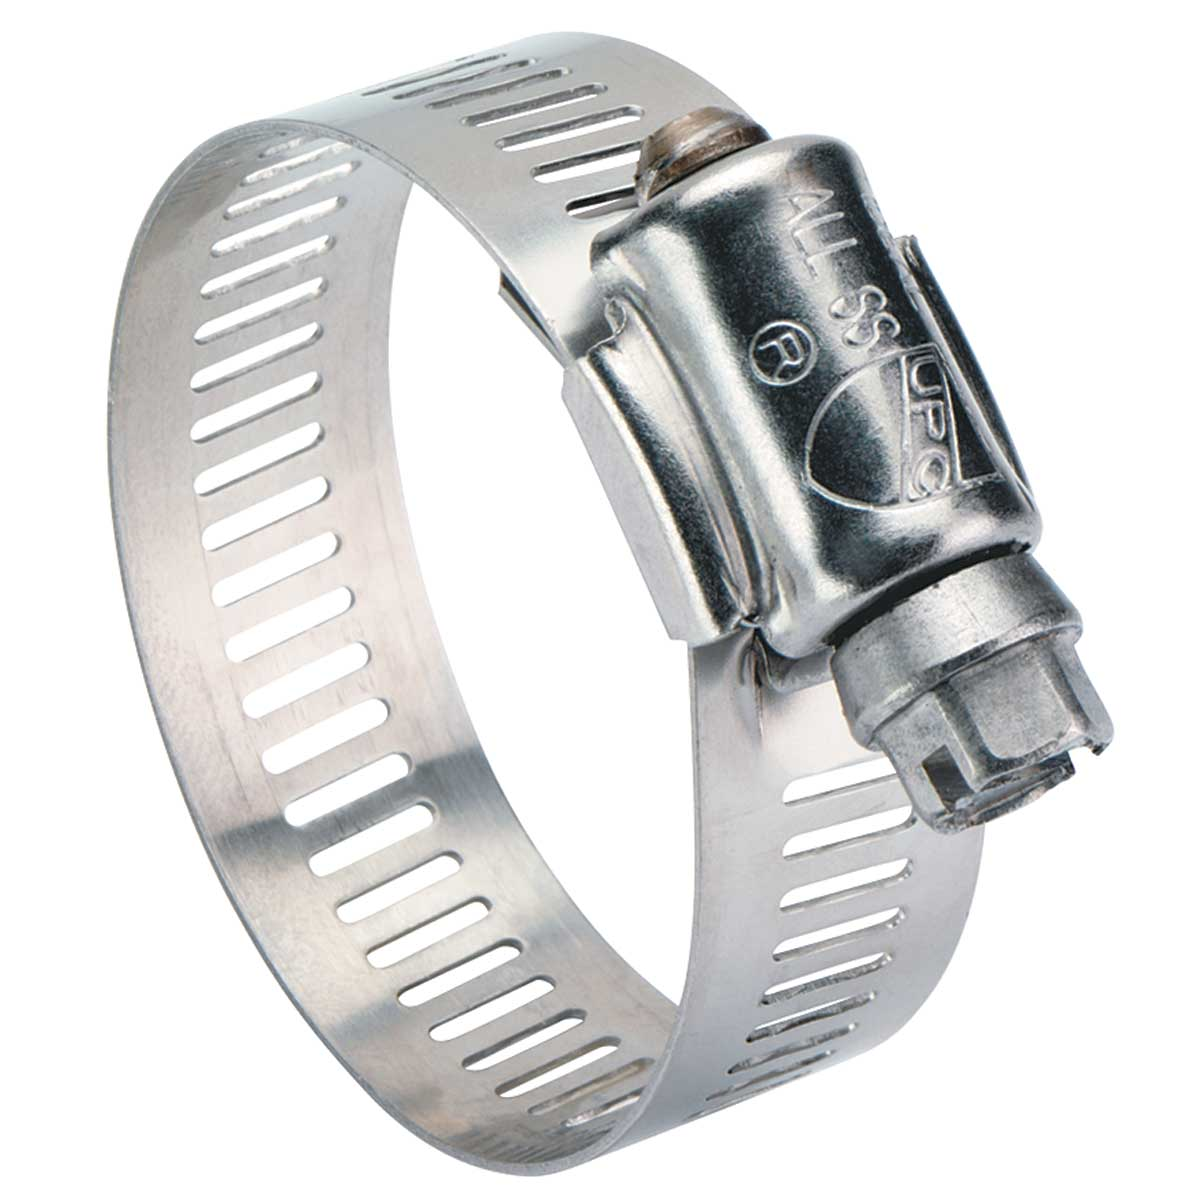 Stainless Steel Hose Clamp 3/4″-1 3/4″ | Pondscape Online for Hose Ring Clamp  14lpgtk